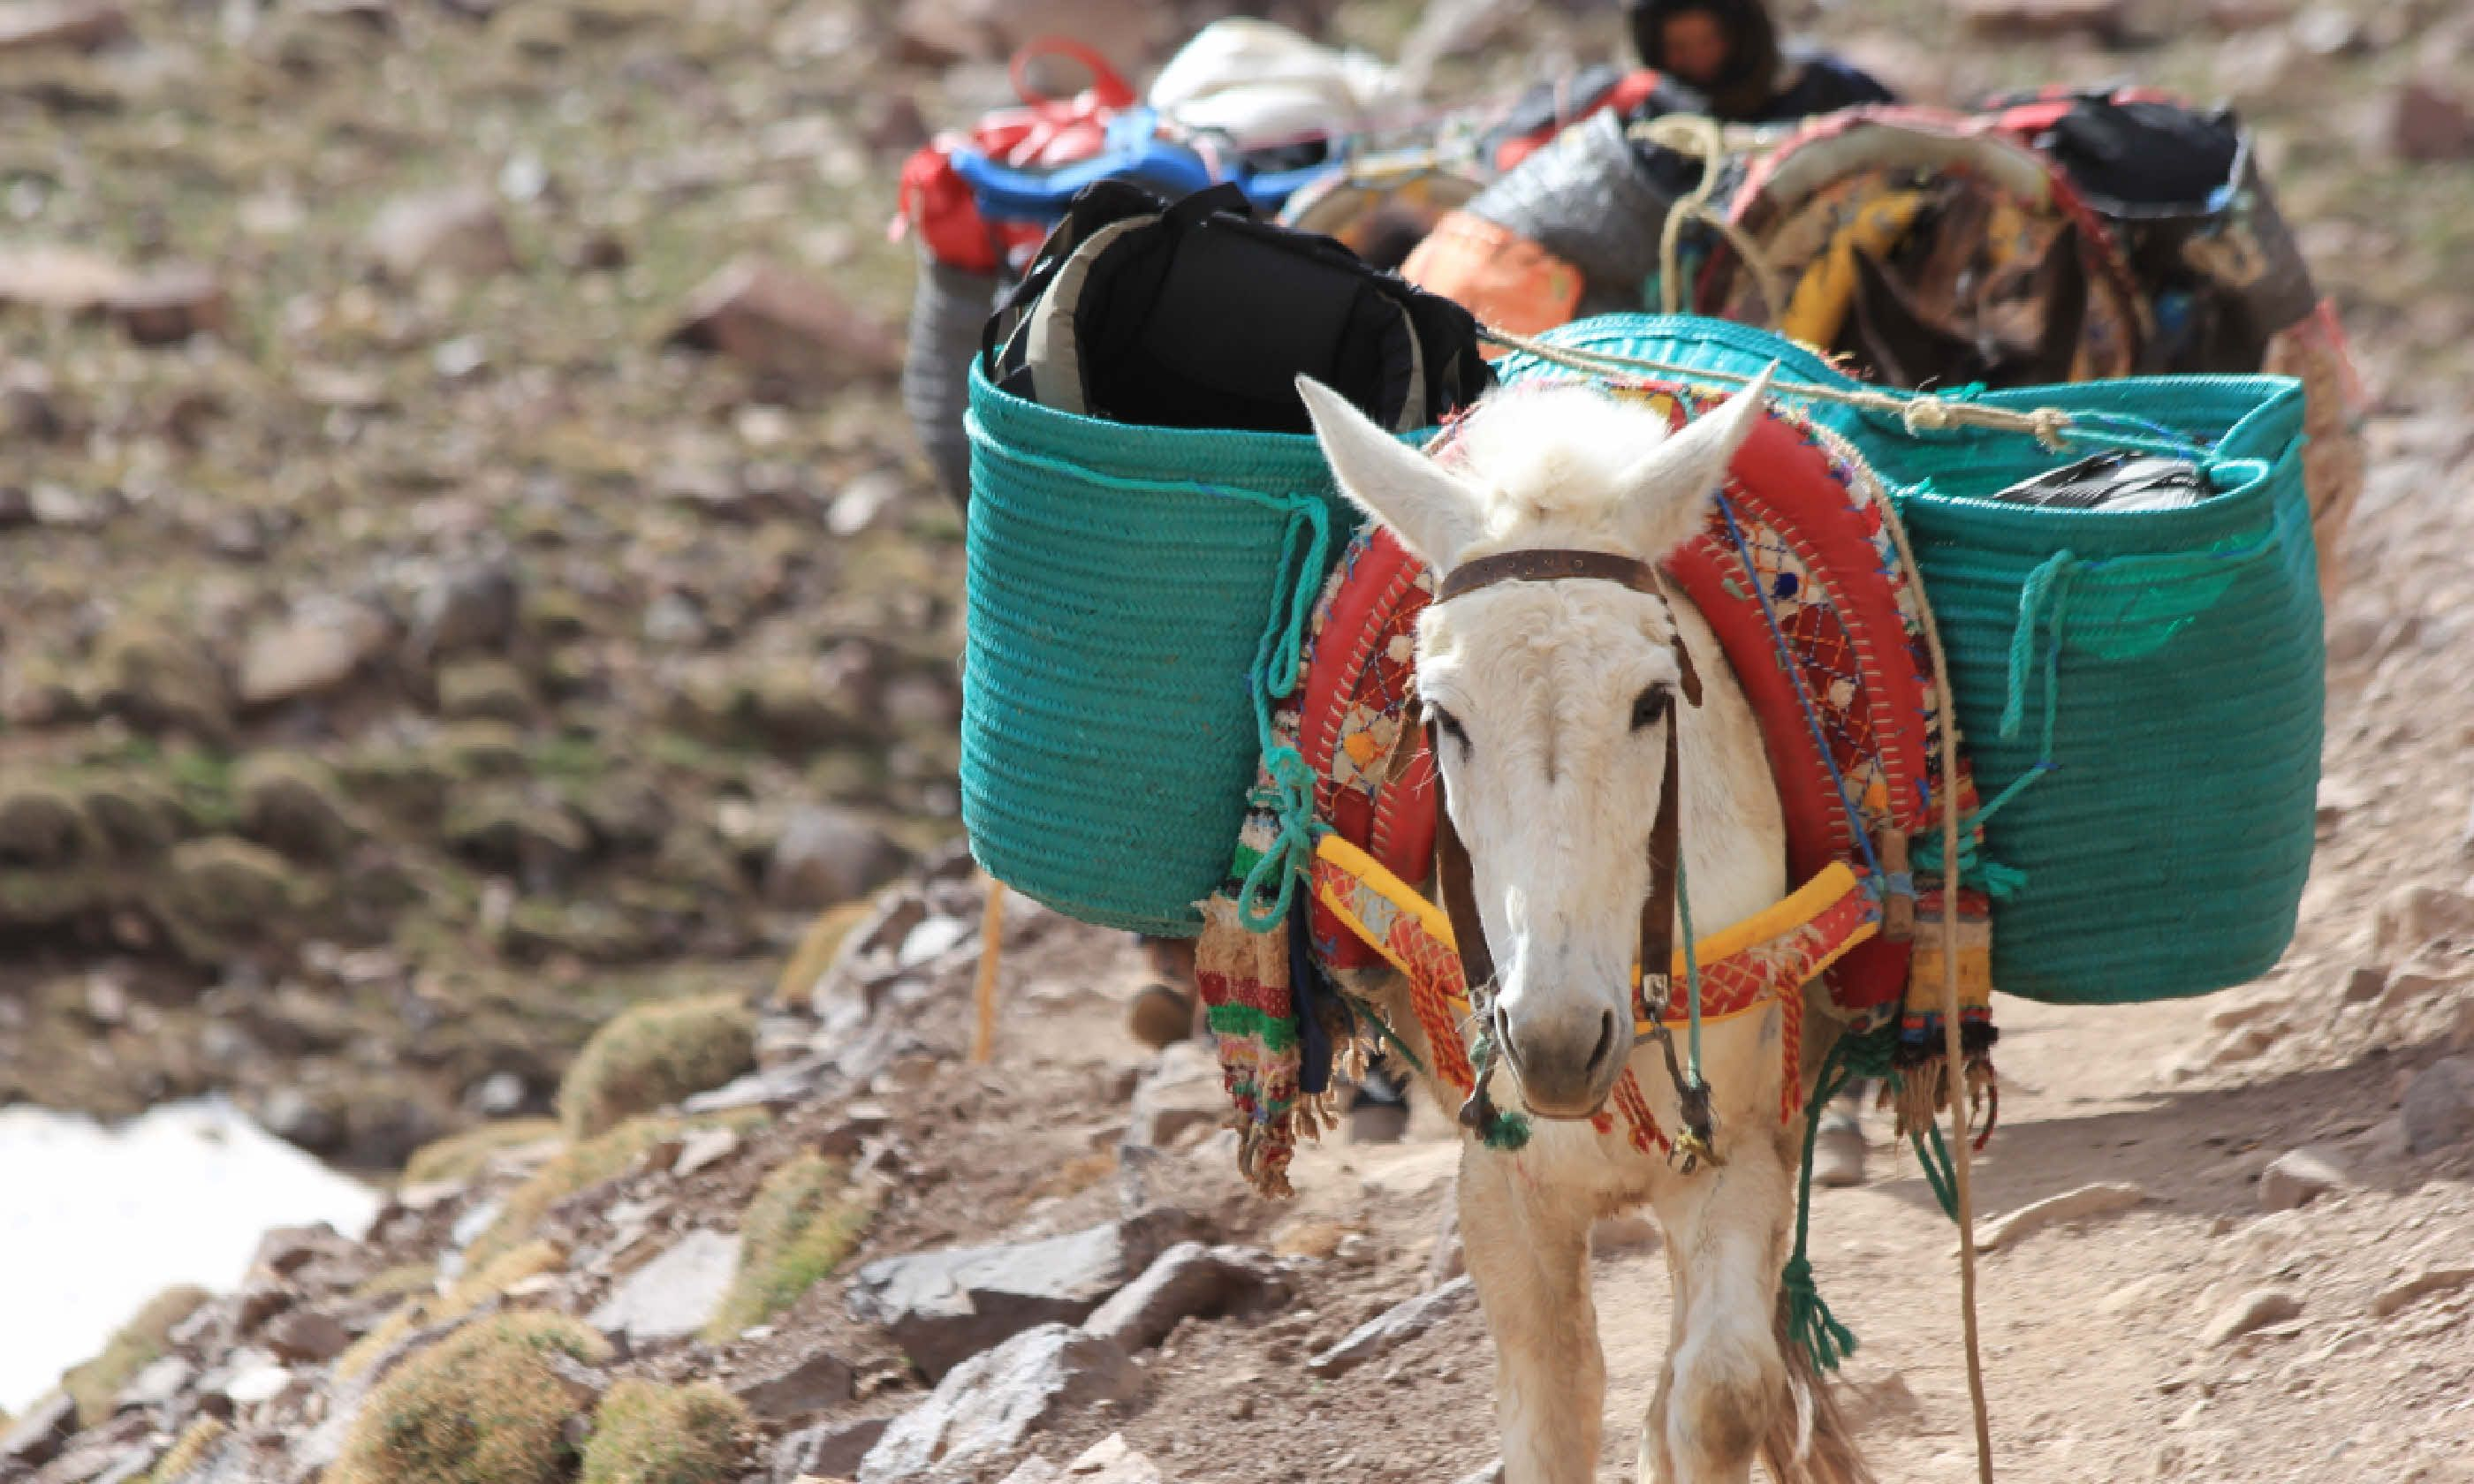 Mule in the Atlas mountains (Shutterstock)